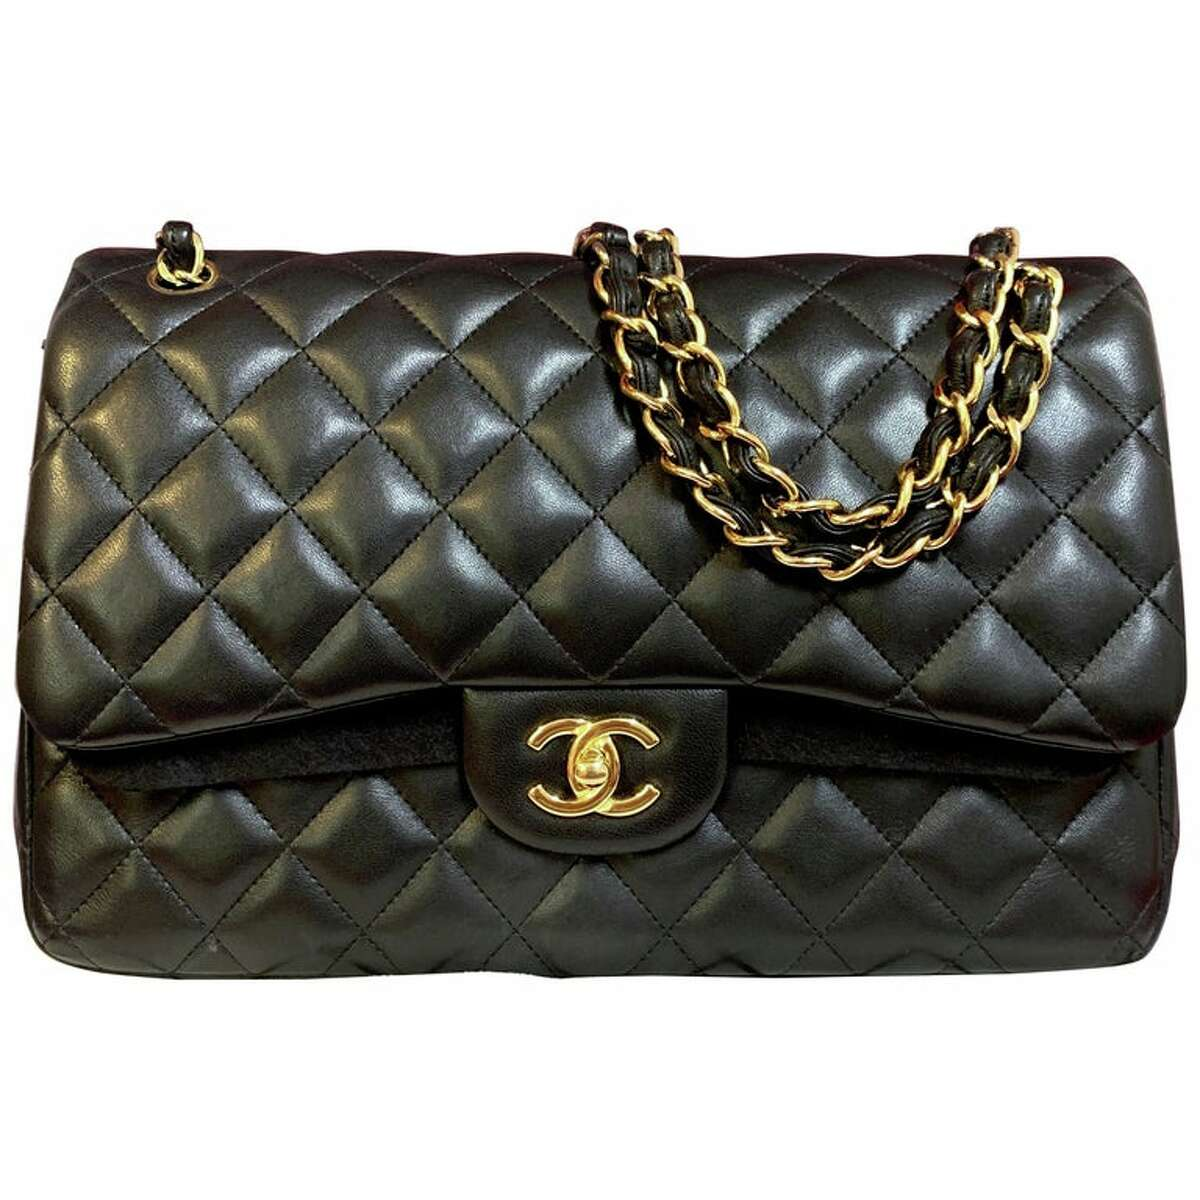 Chanel's iconic black quilted-leather flap bag